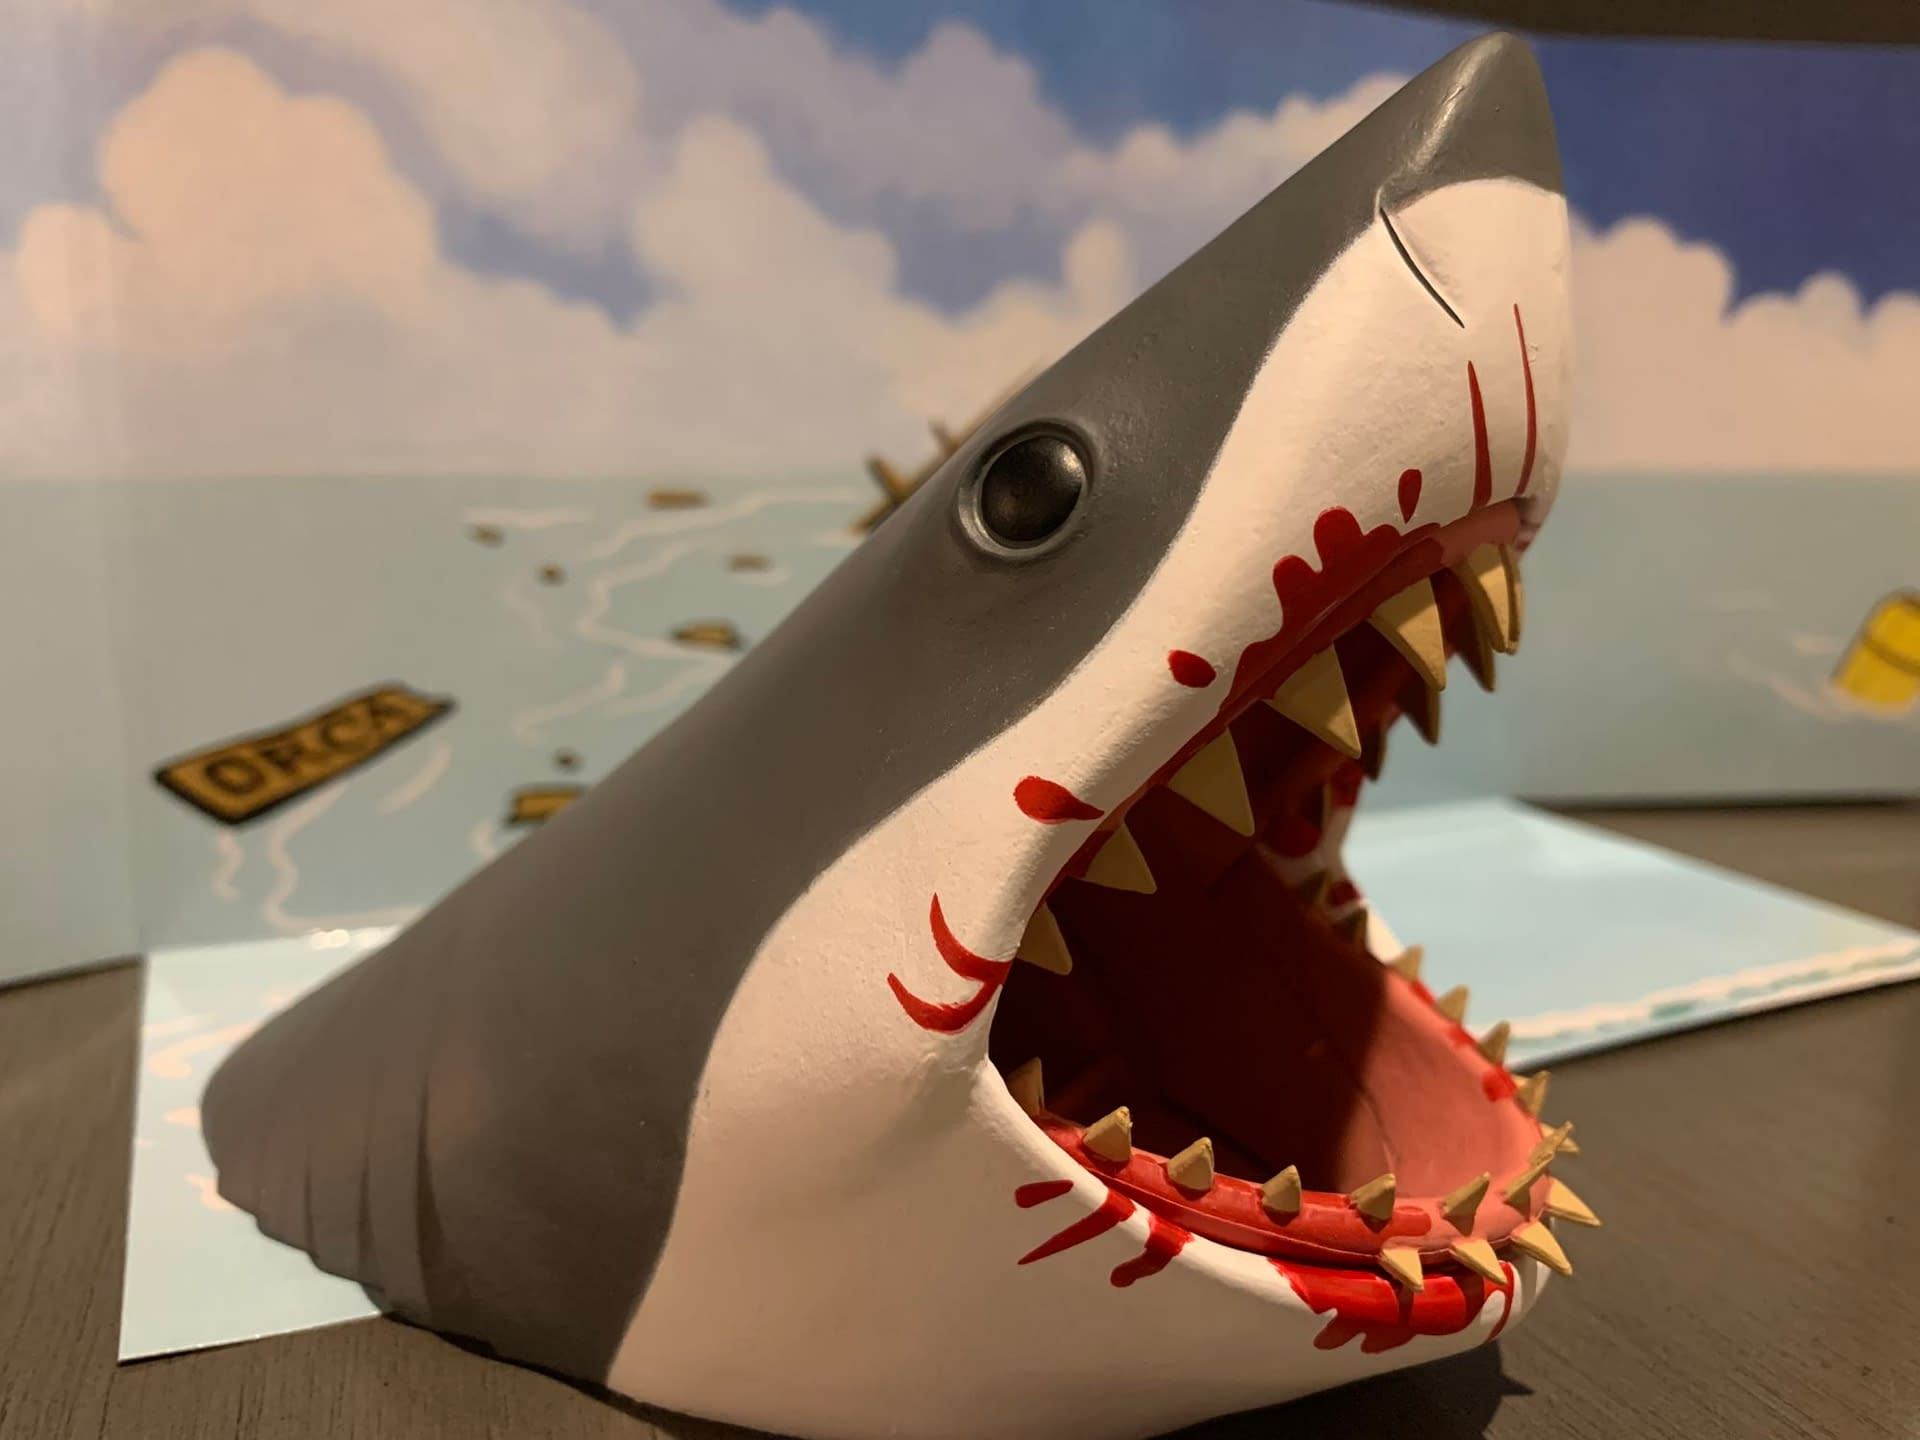 Jaws Toony Terror Is The Peak Of NECA's Awesome Horror Line